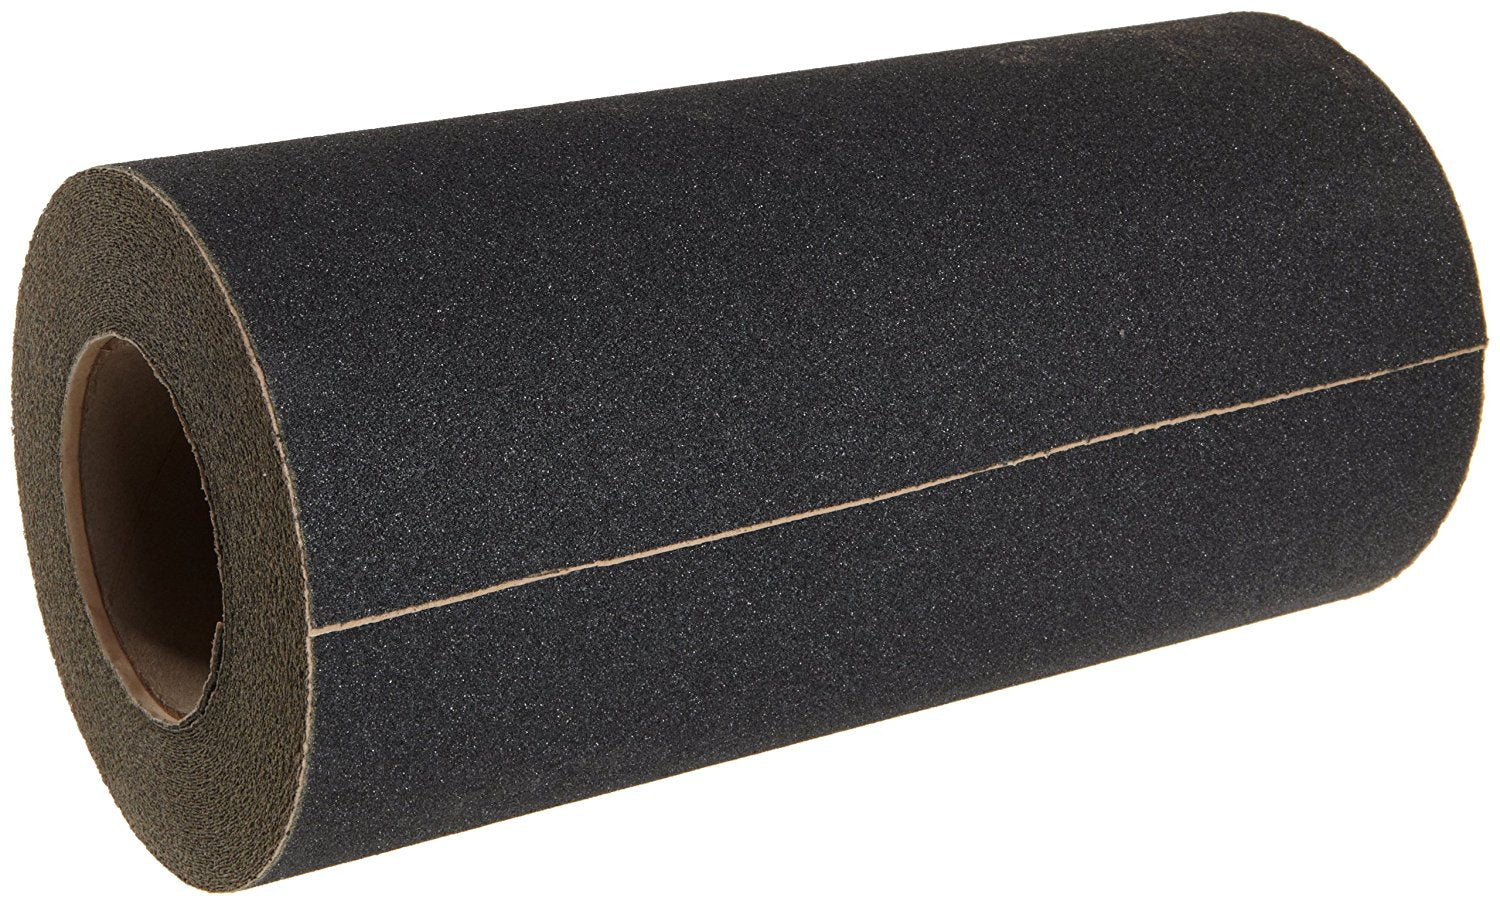 "12"" X 60' Roll BLACK Abrasive Tape - Use Code 25OFFTODAY for 25% Savings – Limited Stock Available"